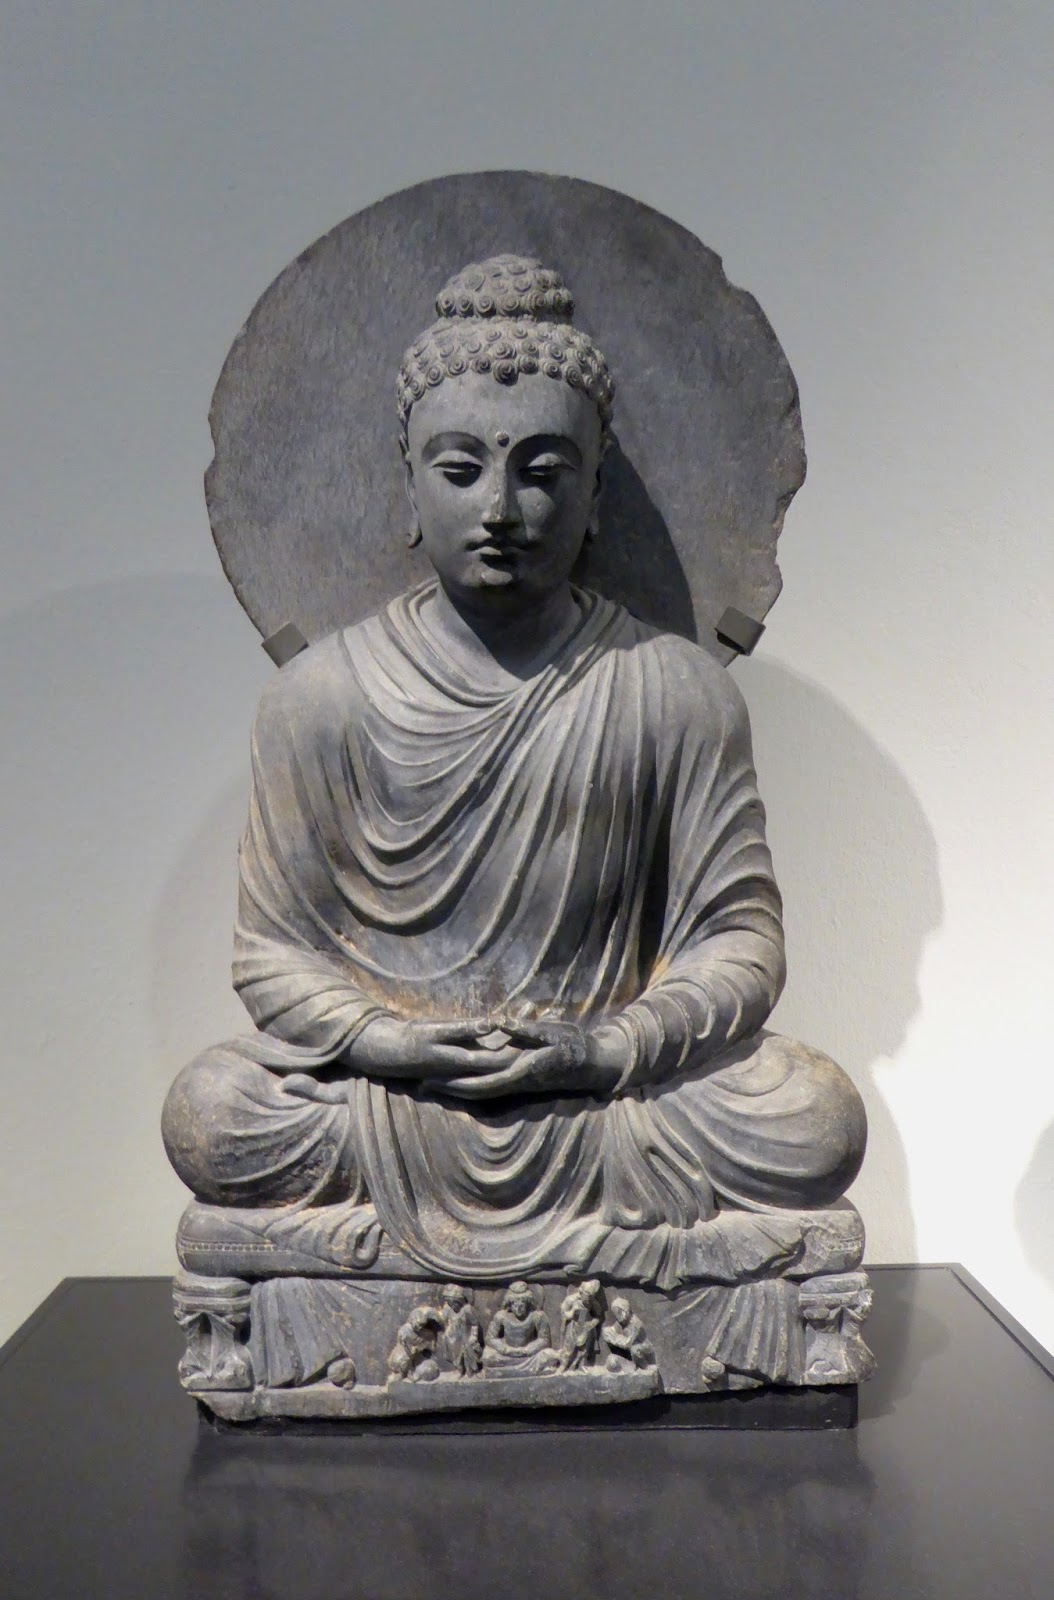 Was Gandhara Art Influenced By Greeks Or Romans